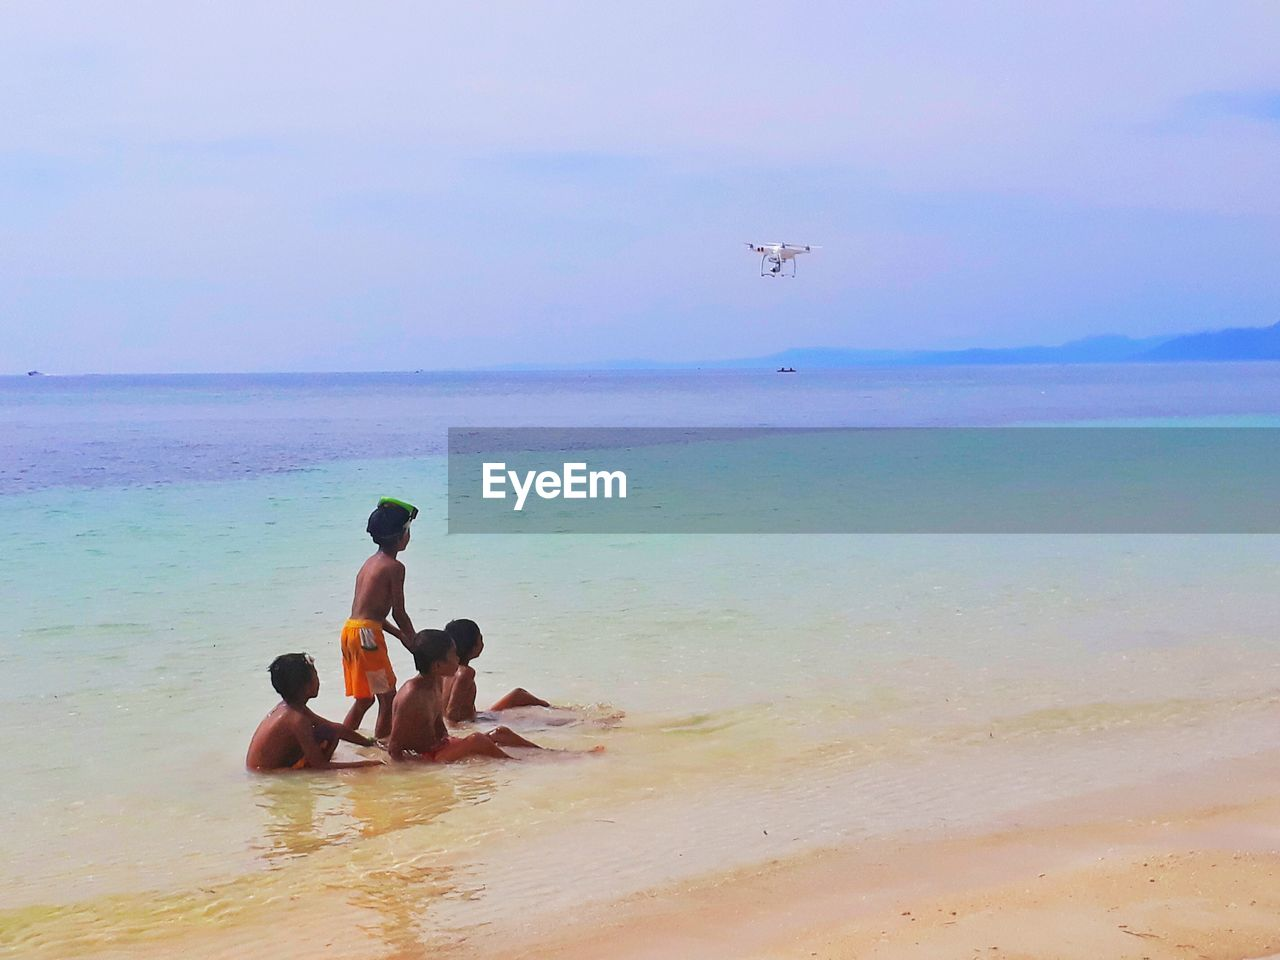 sea, horizon over water, real people, beach, water, sky, leisure activity, shirtless, nature, men, togetherness, beauty in nature, scenics, boys, vacations, lifestyles, day, outdoors, mid-air, father, childhood, two people, sand, flying, bonding, friendship, young adult, people